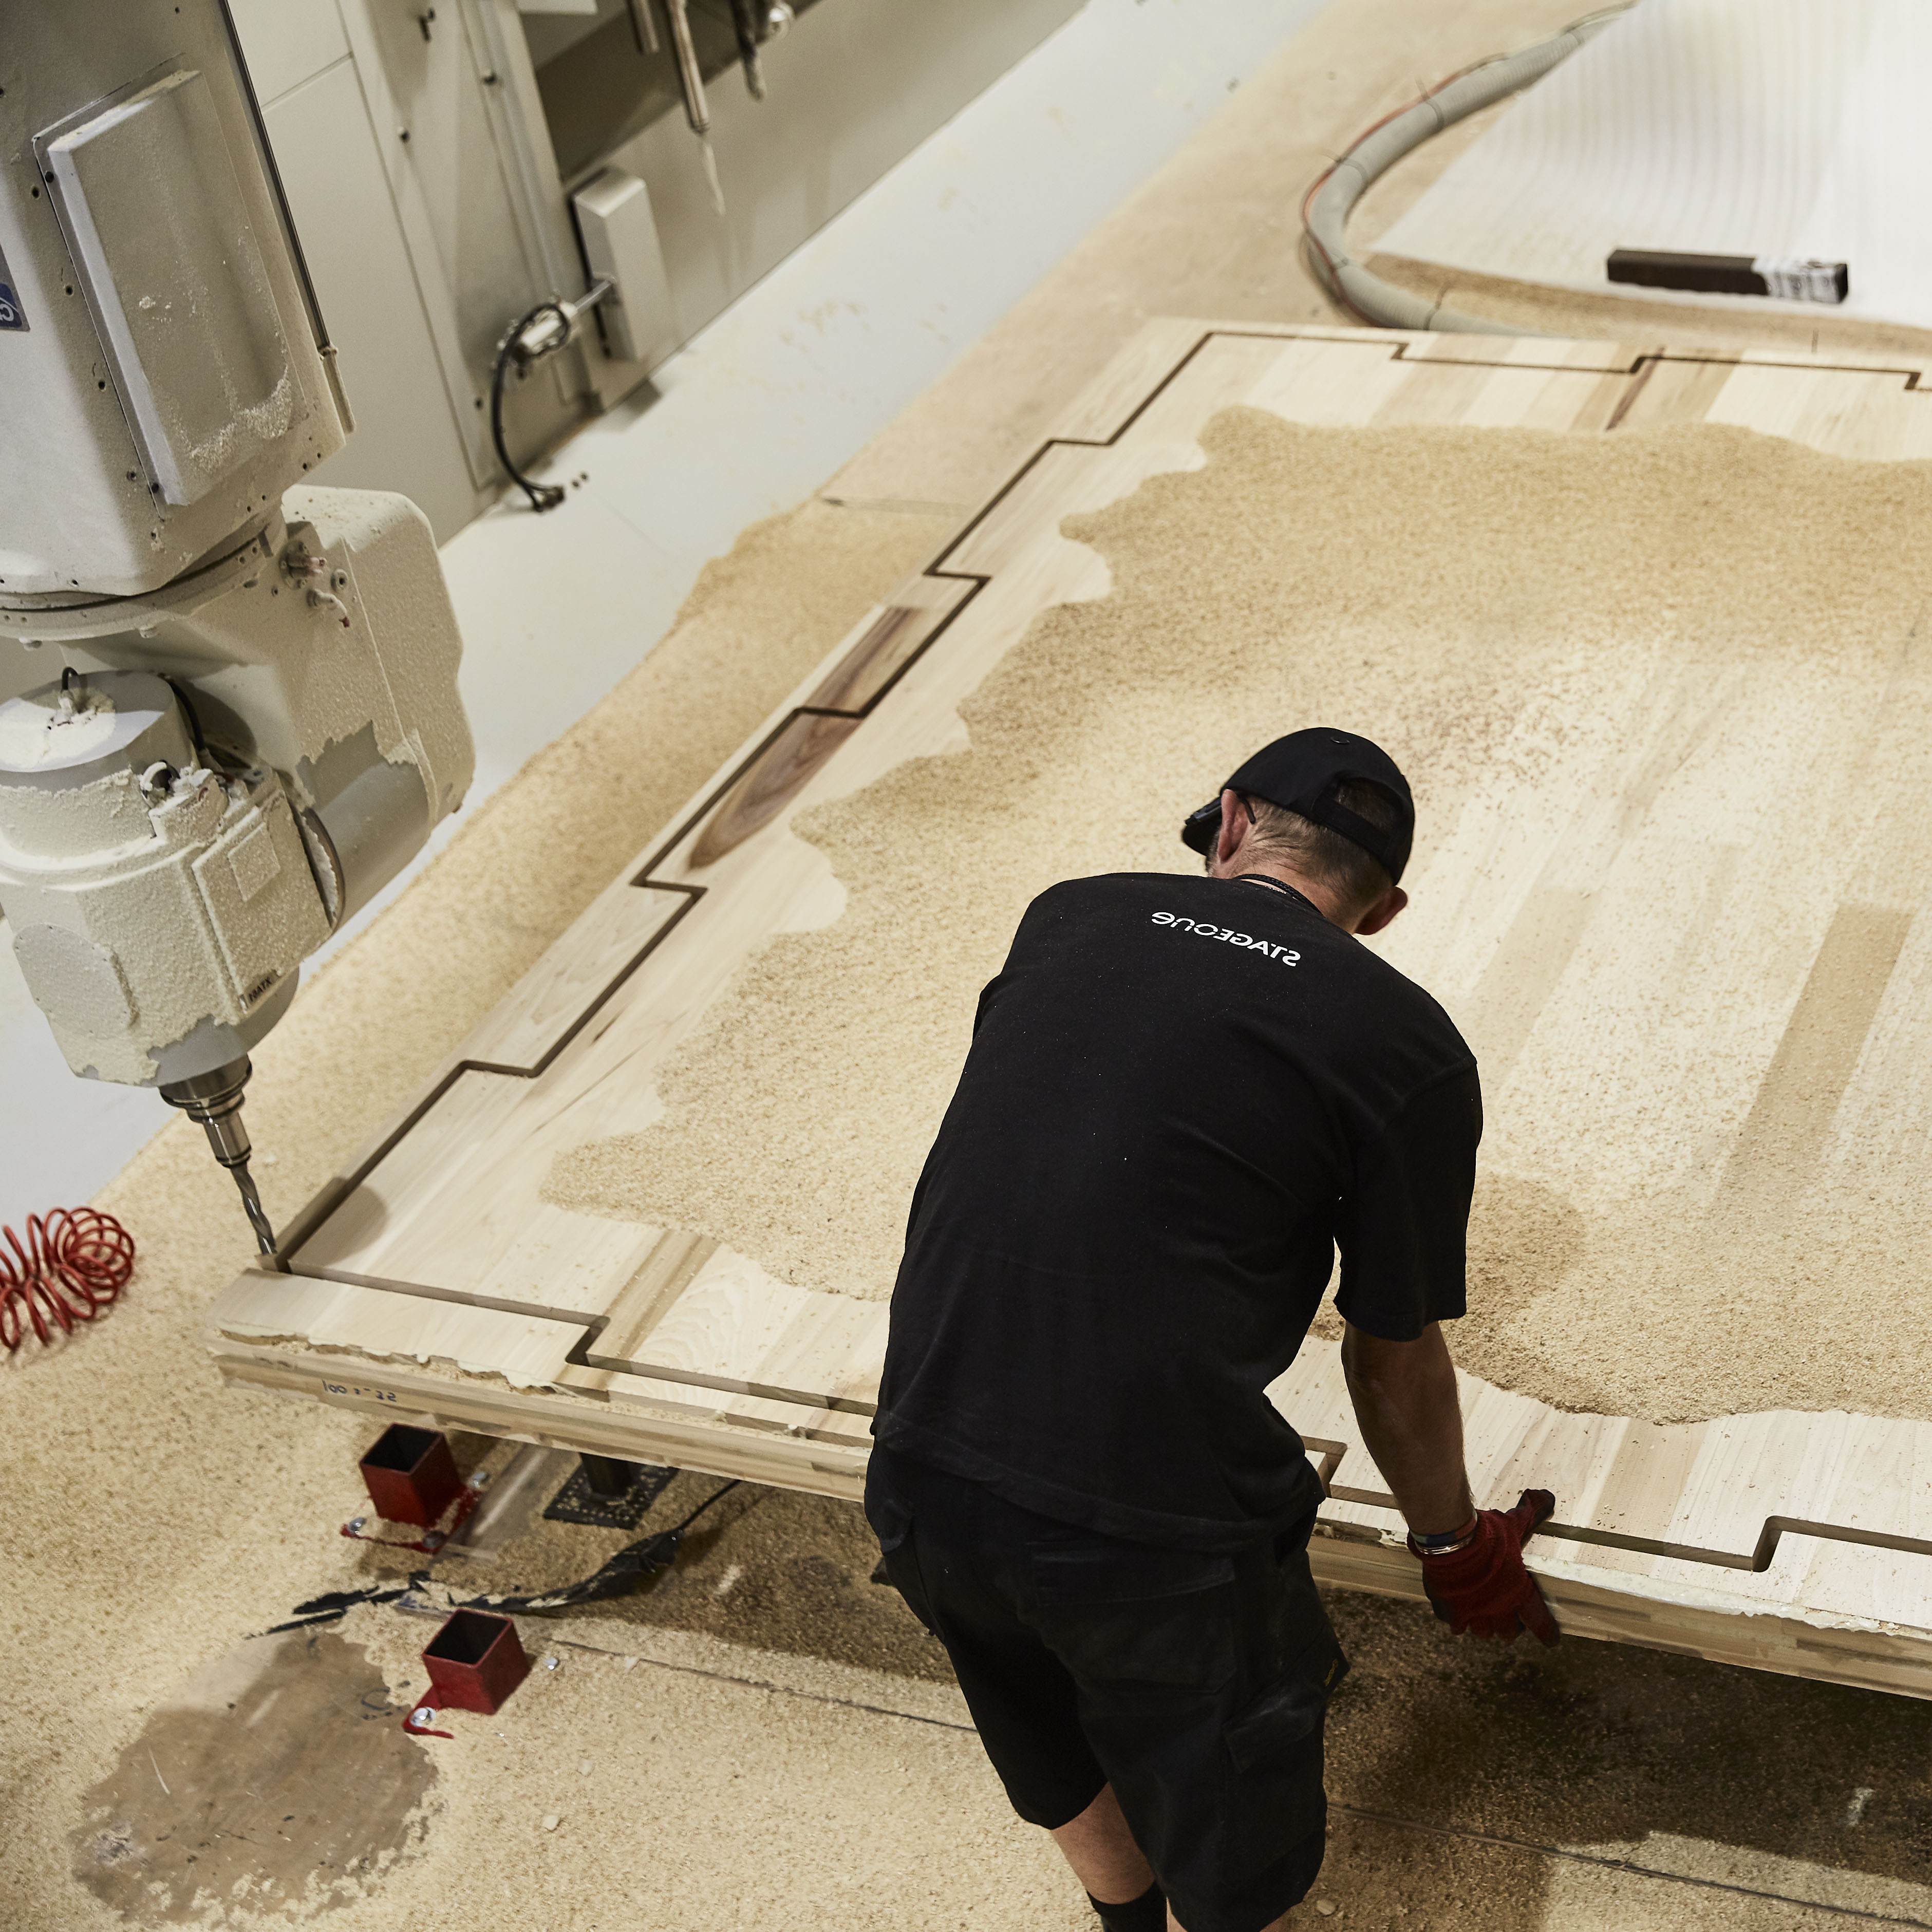 High fidelity photo of a worker fabricating a sheet of timber in the workshop through parametric design